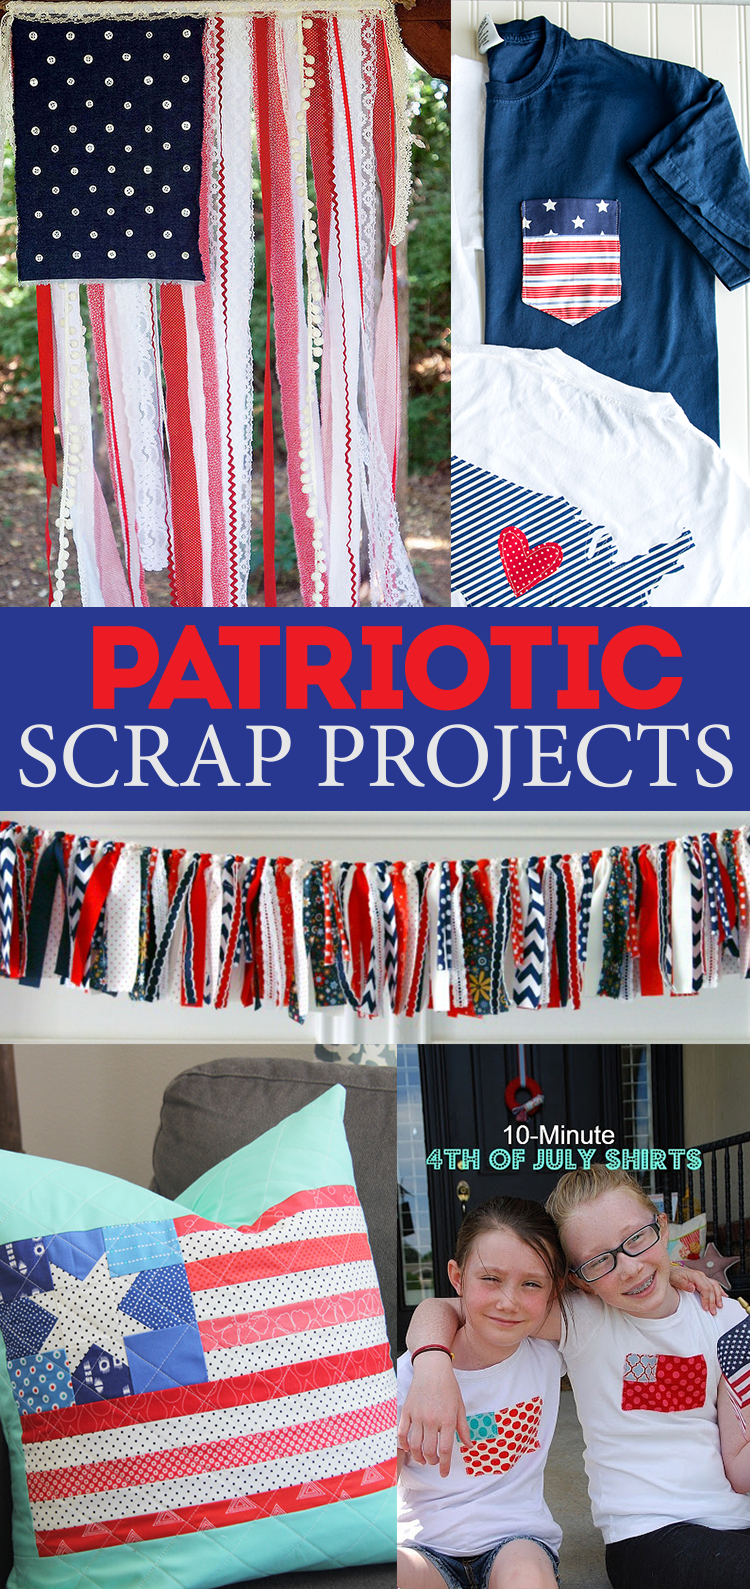 Patriotic scrap projects - bust through your scrap strash to create these gorgeous Red White and Blue DIYs!